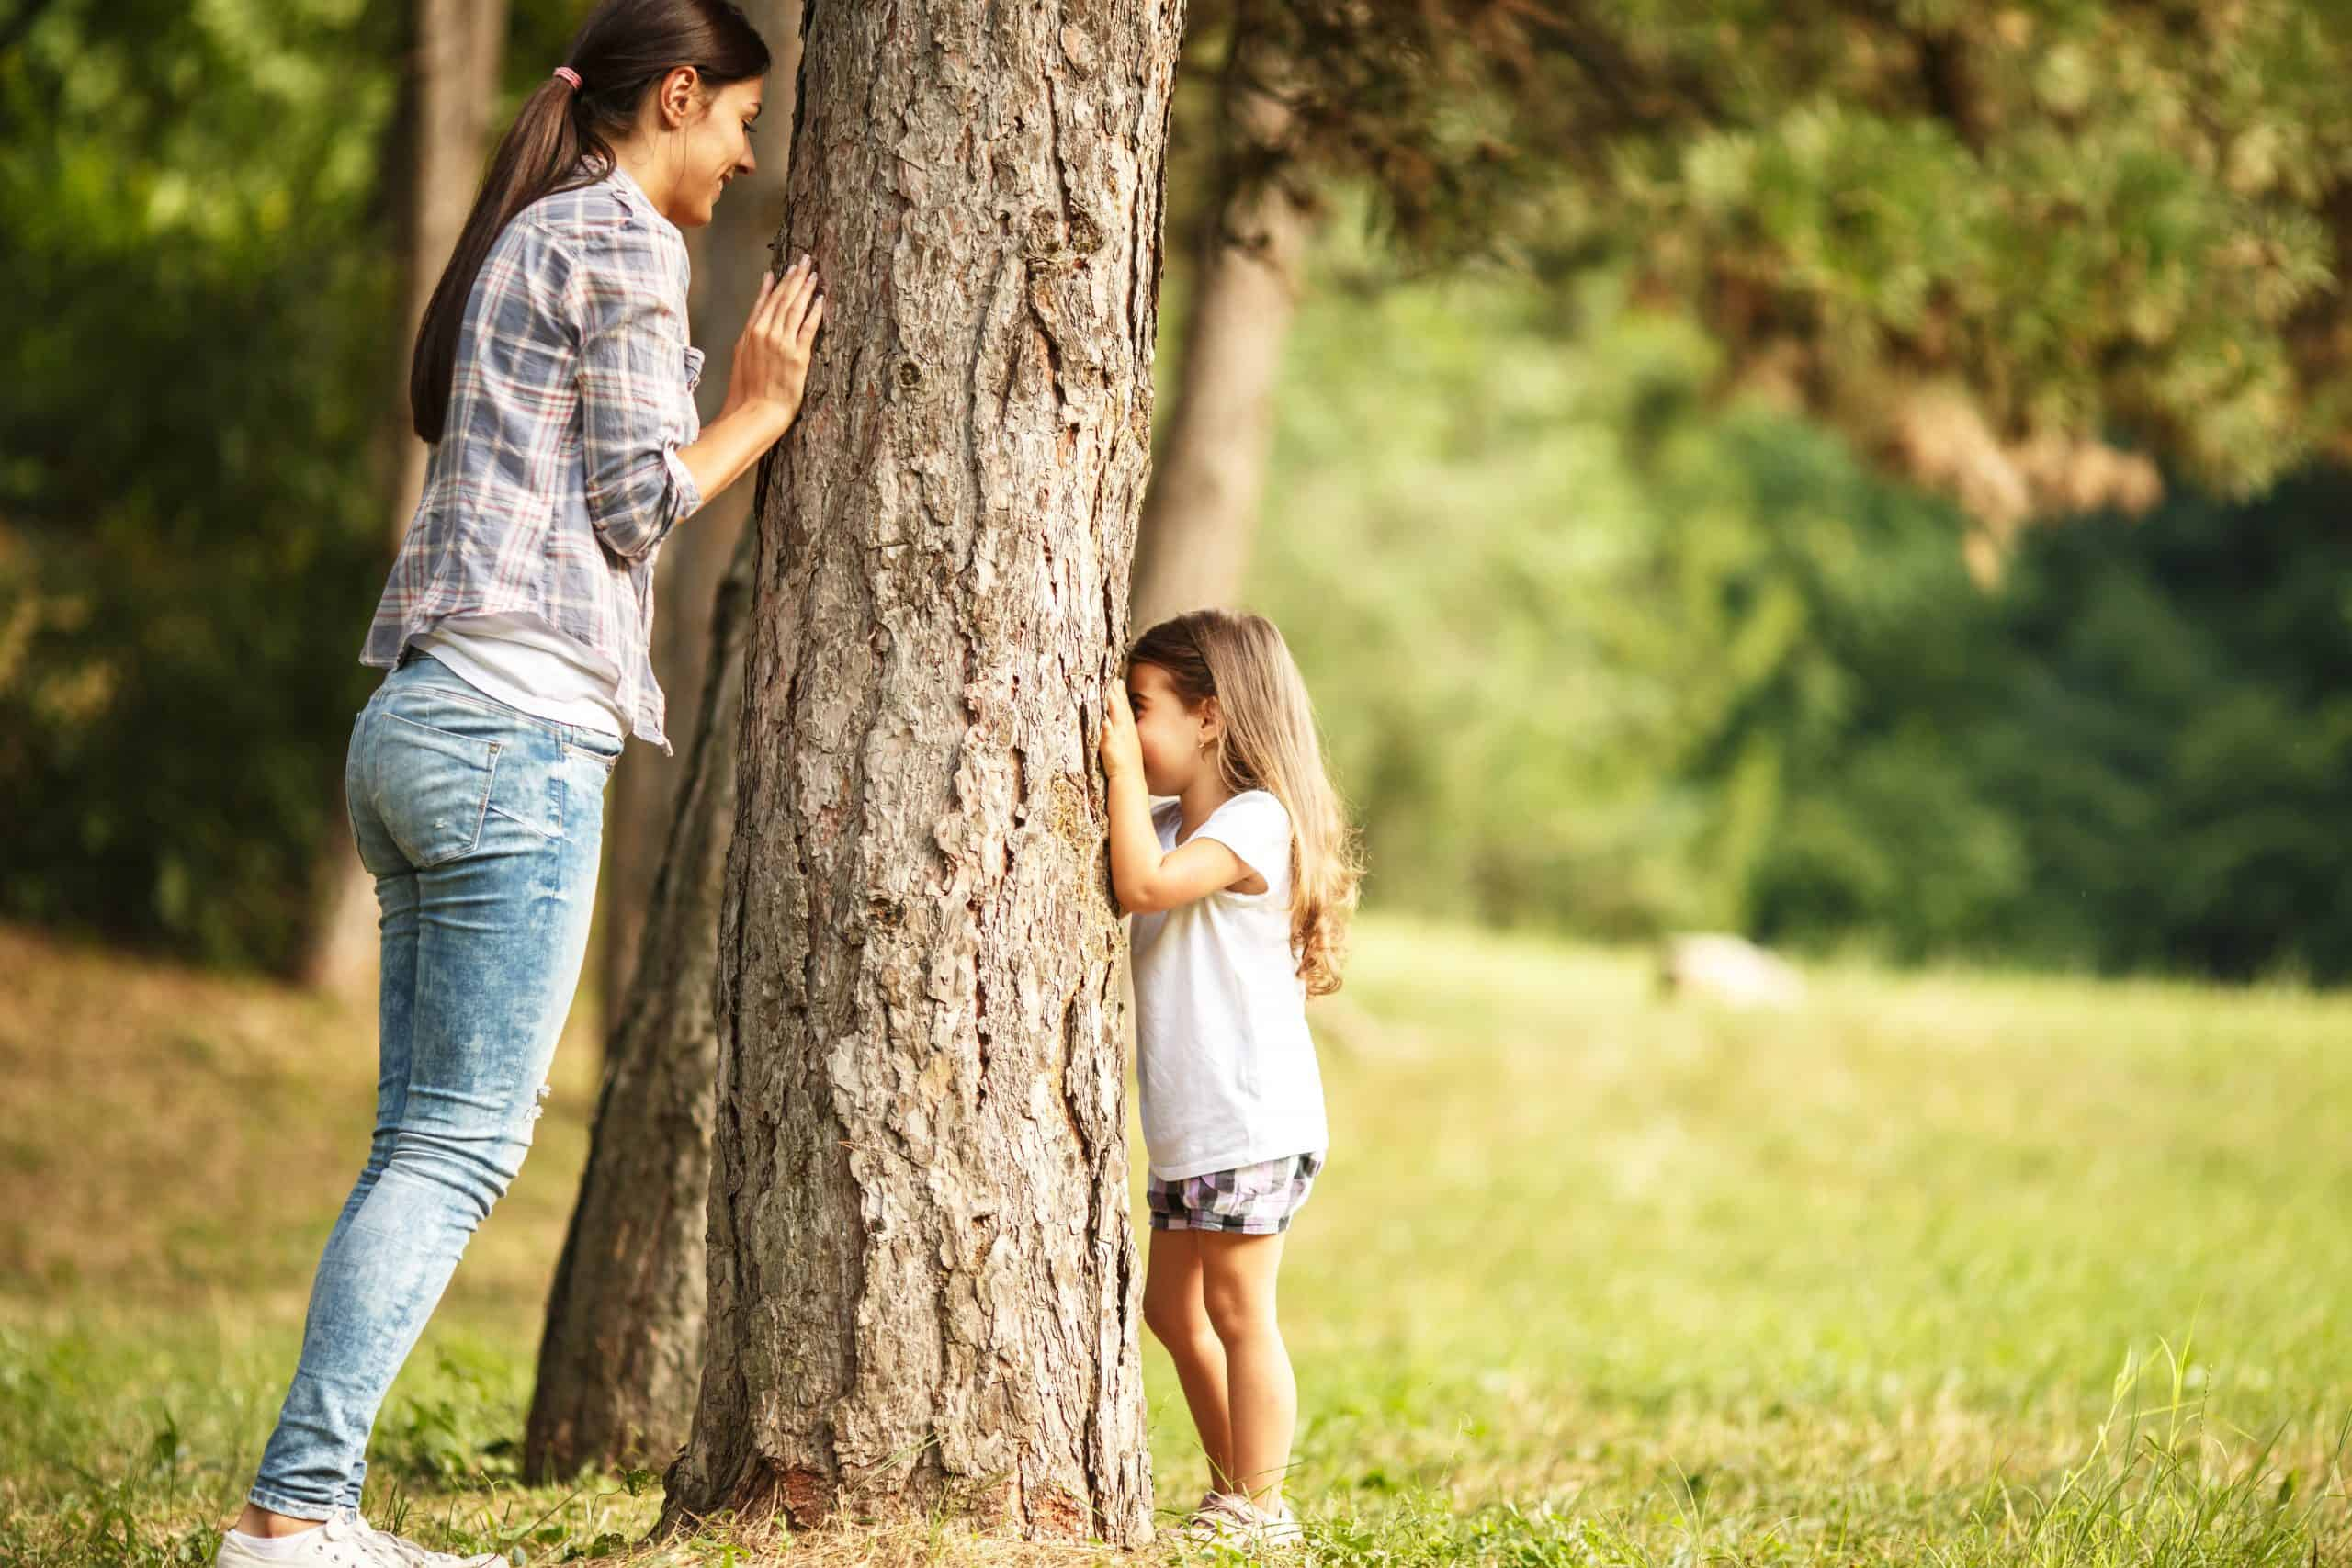 Mother and daughter play hide and seek at the park family game